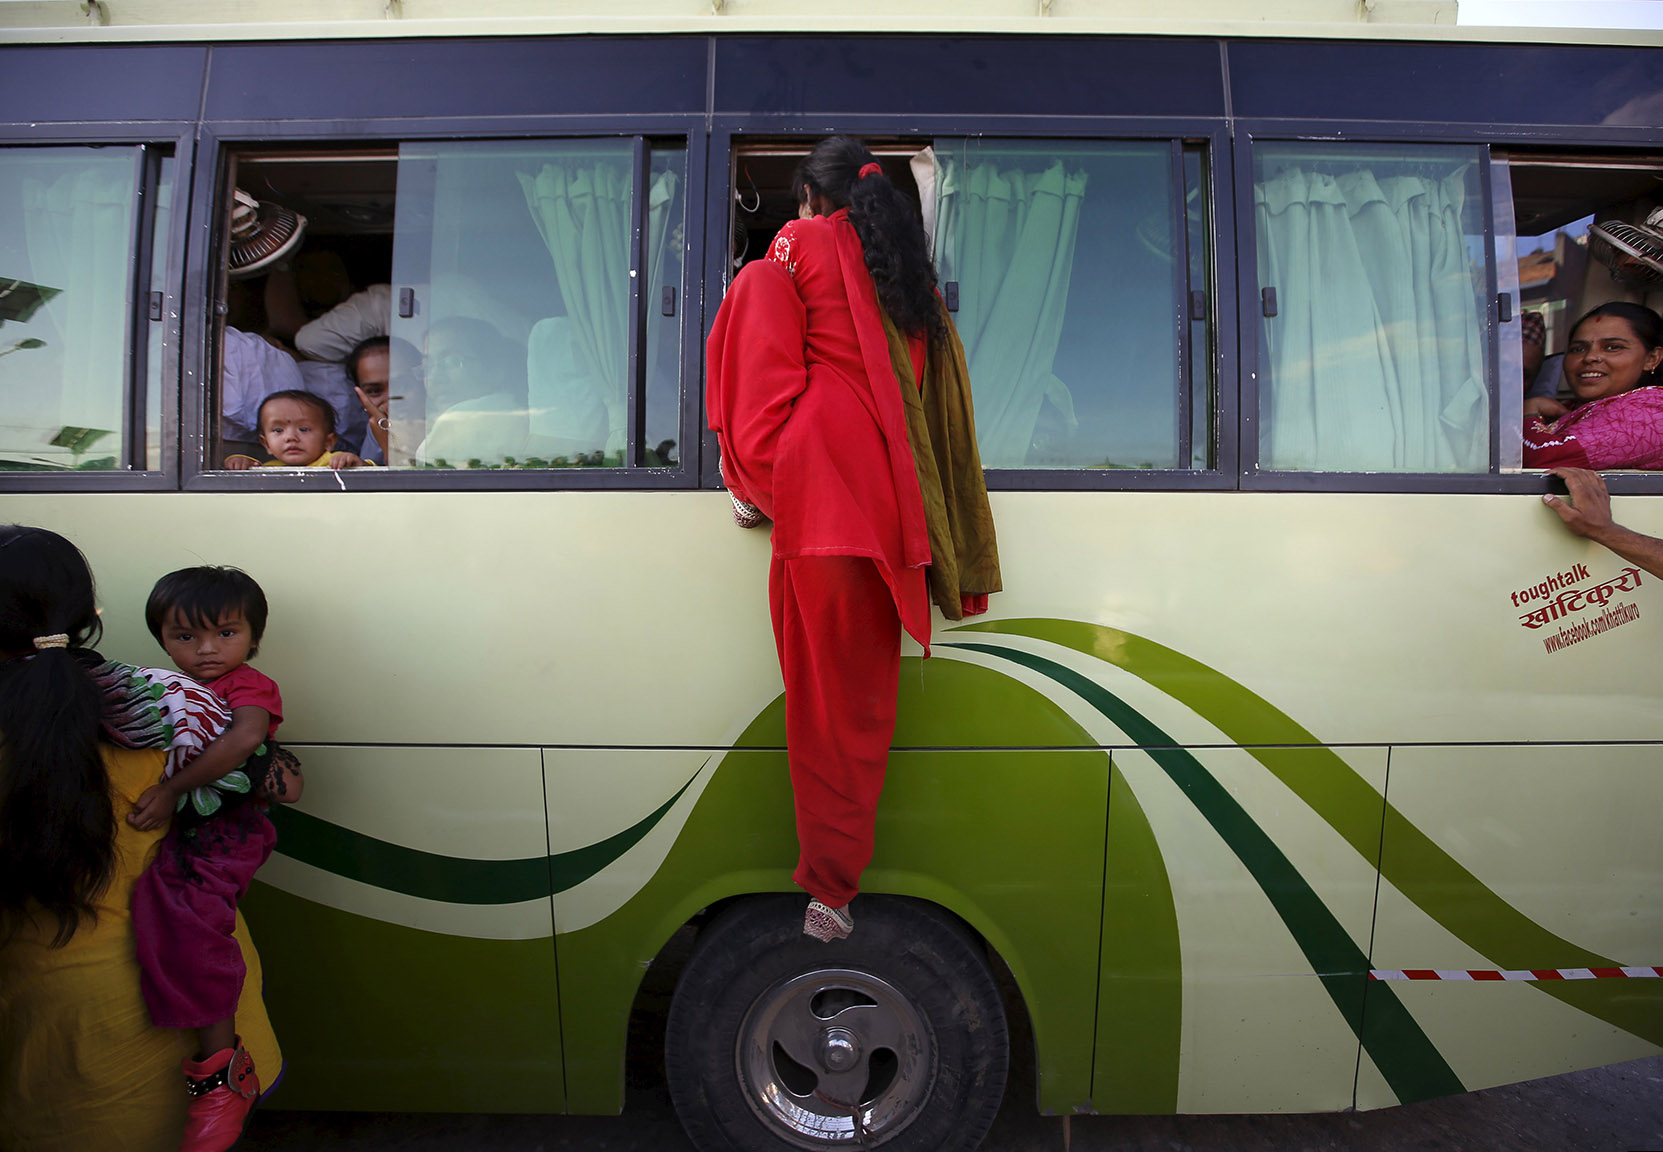 A passenger climbs through the window of an overcrowded bus